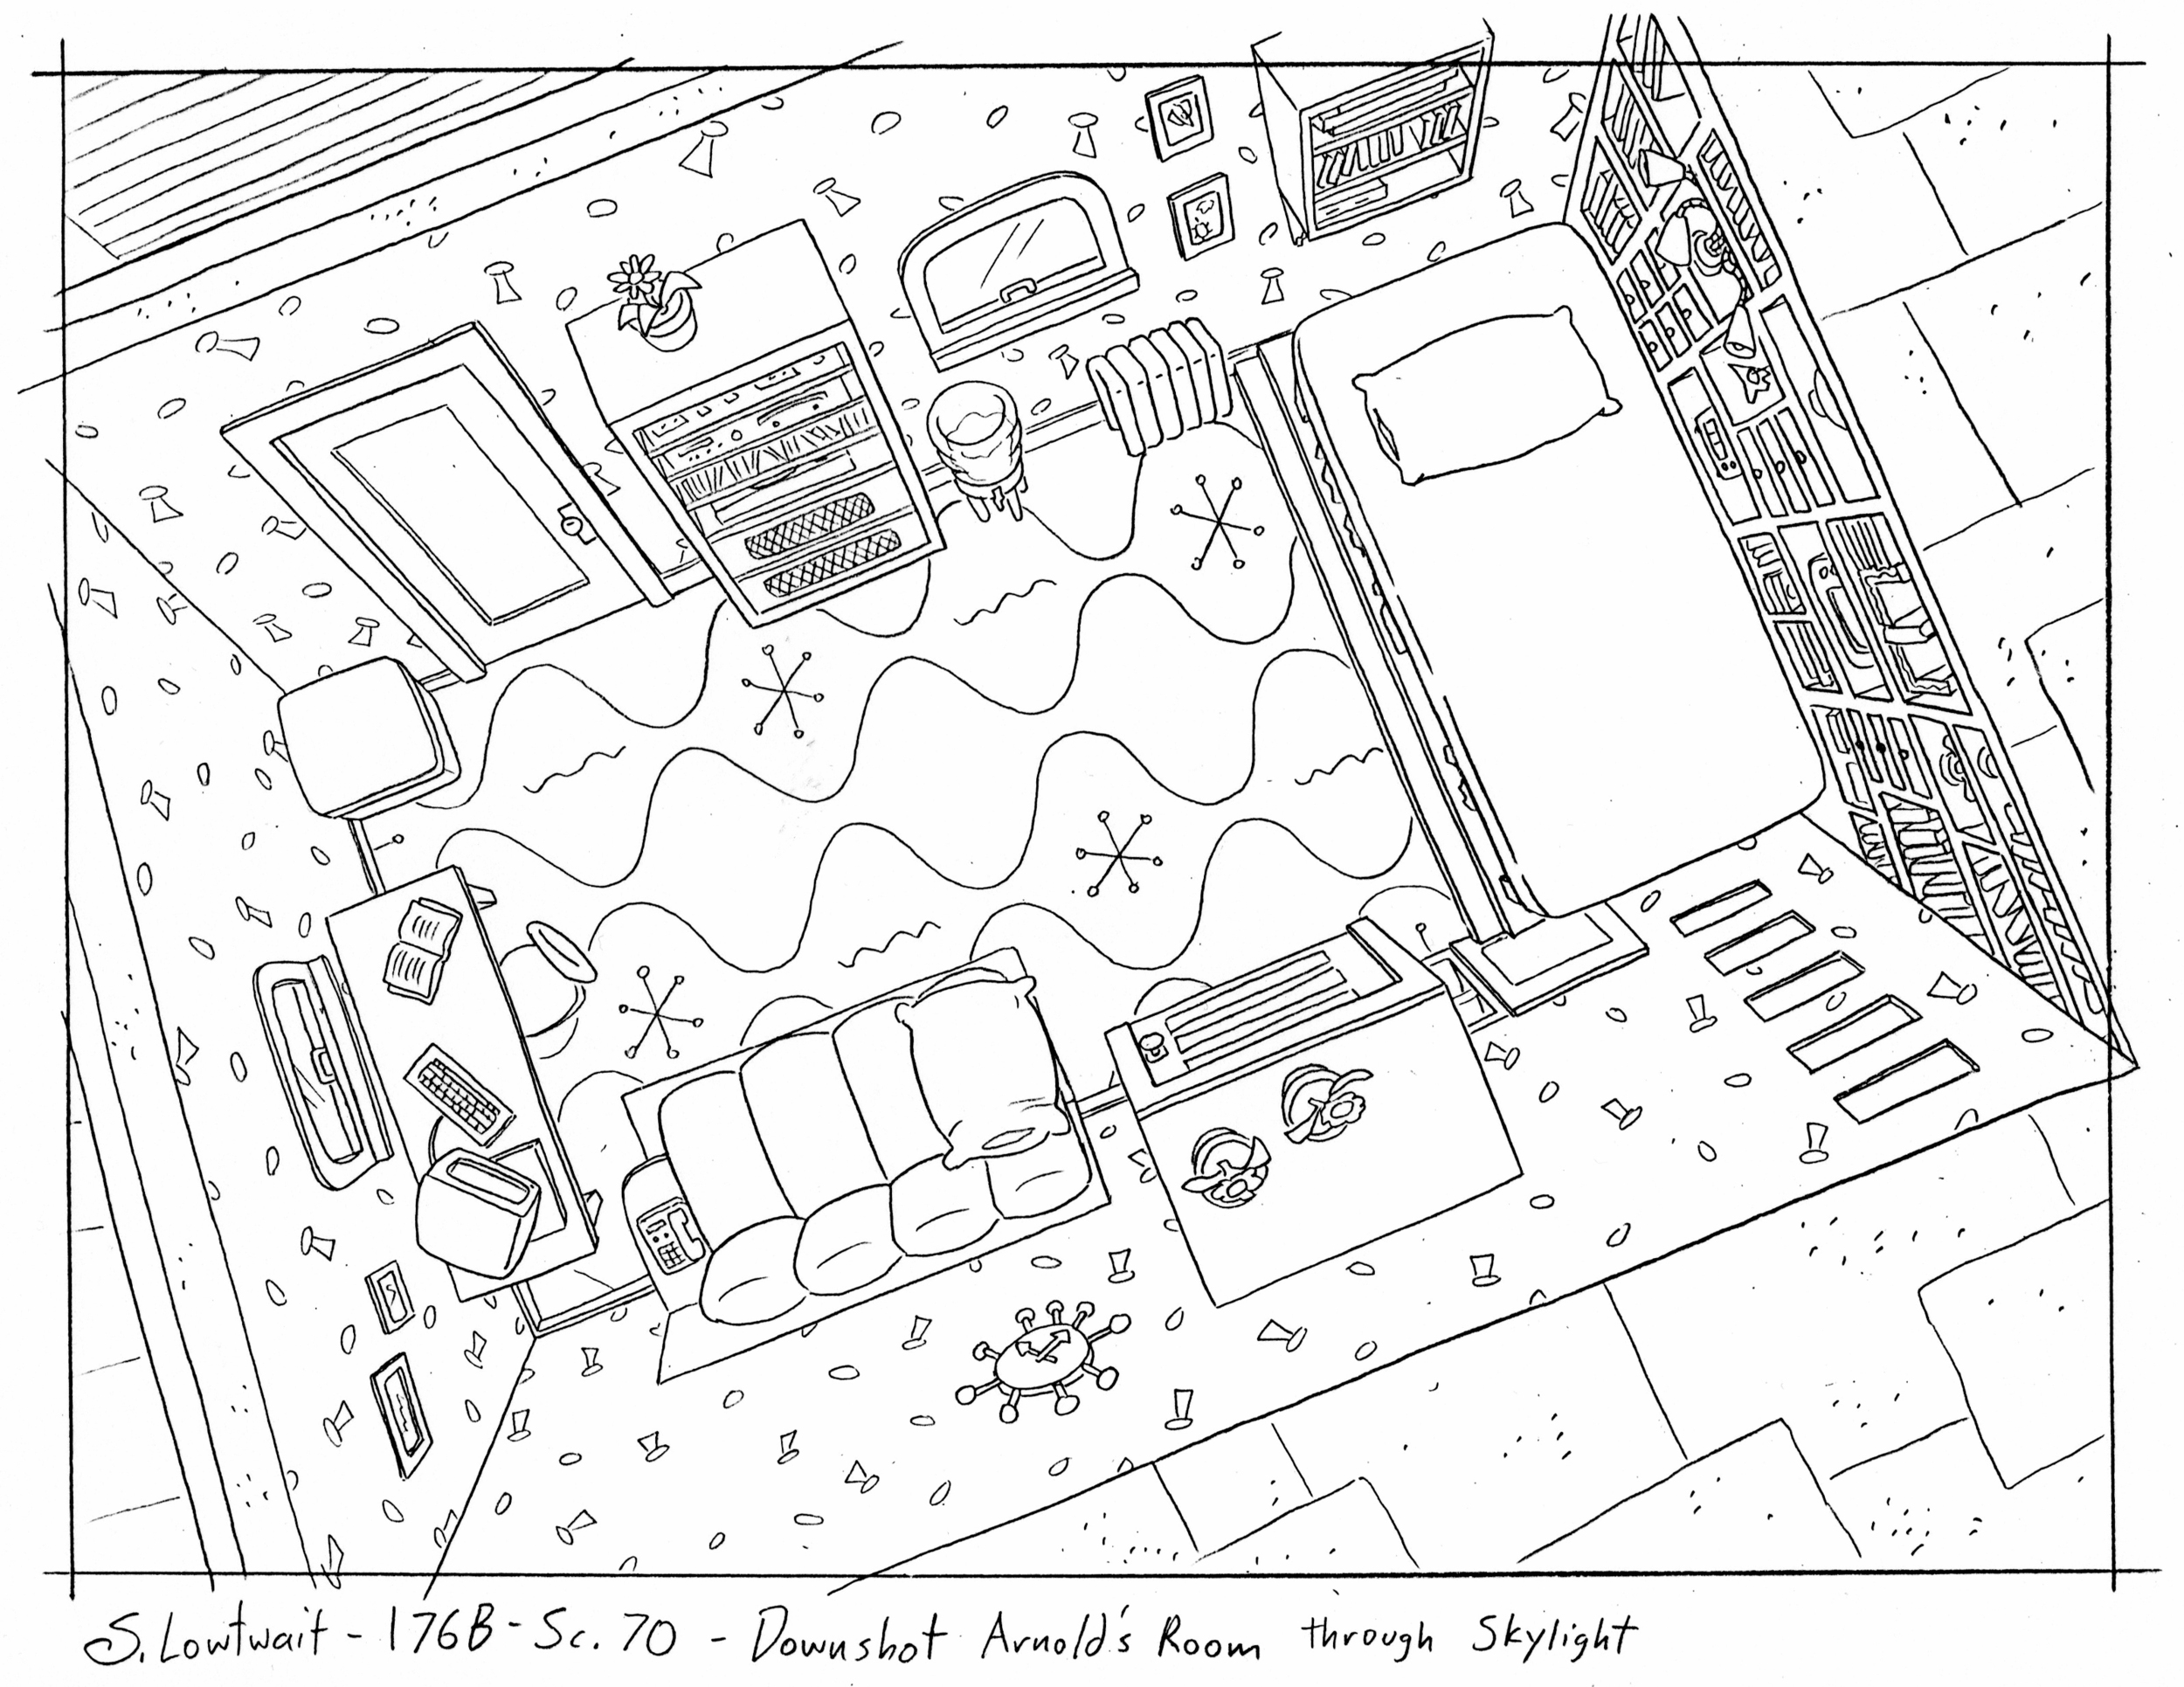 Arnold's bedroom through the skylights. I didn't design his room, but I drew it many, many times.